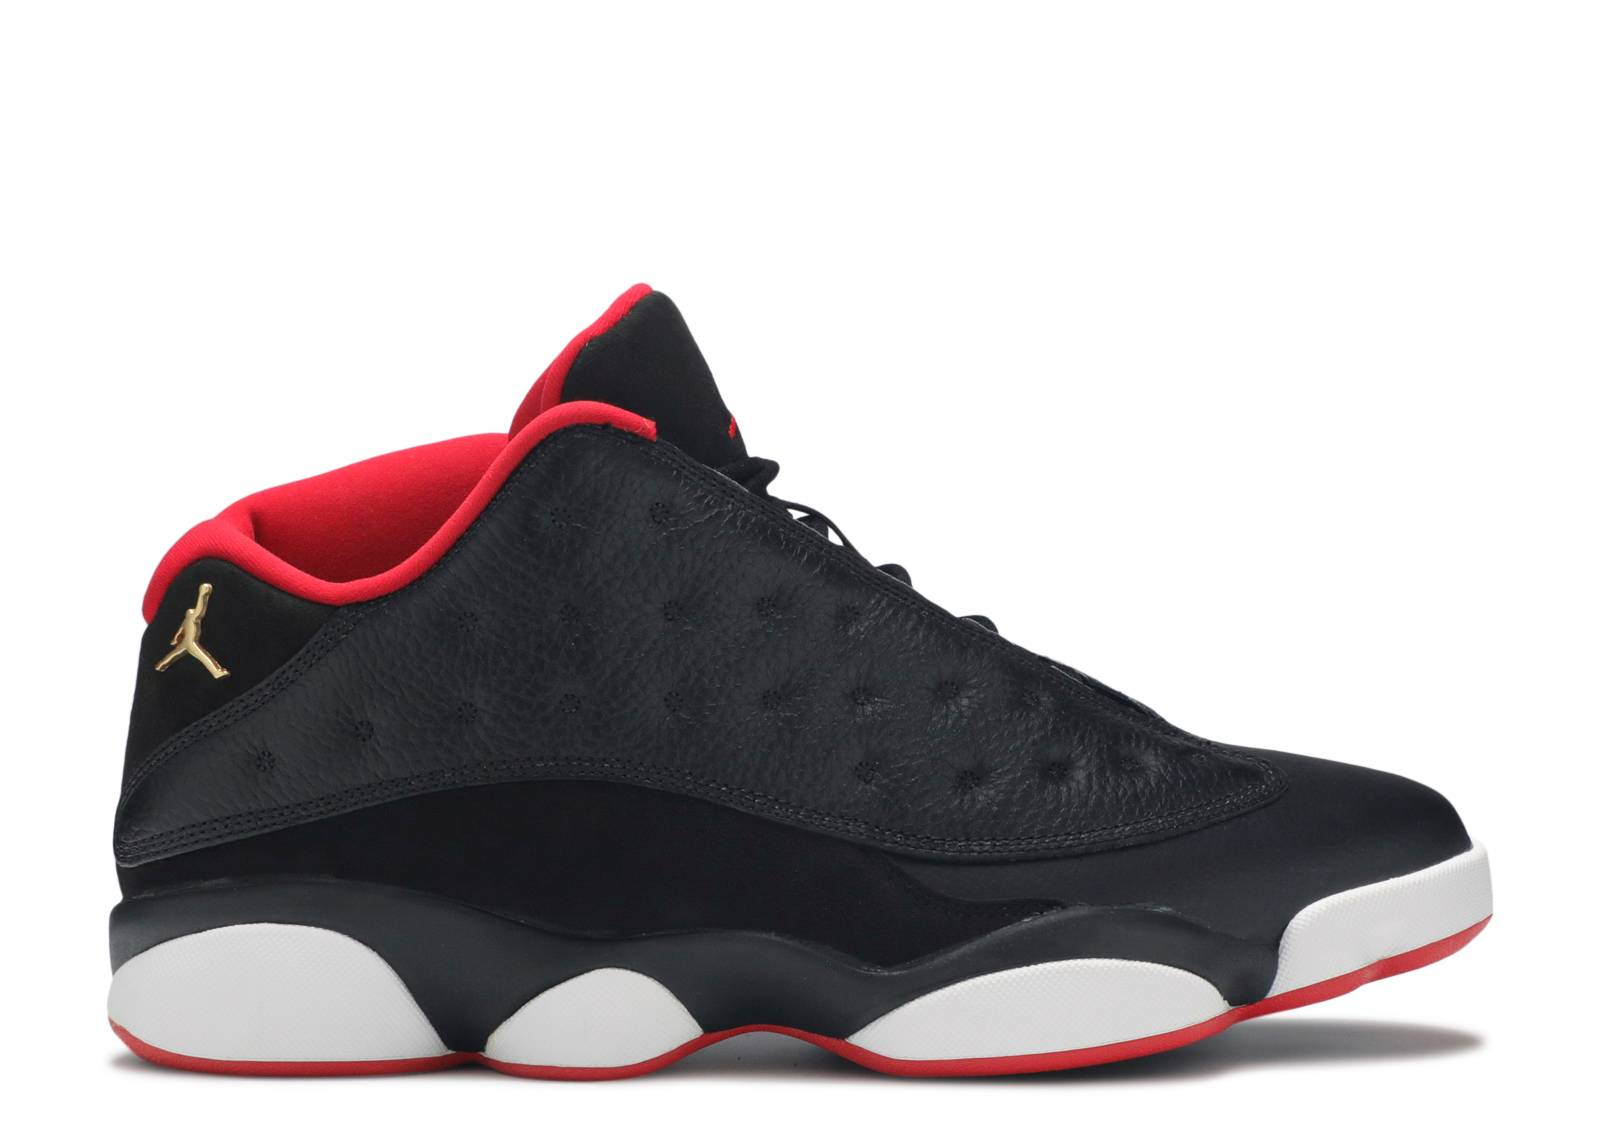 air jordan 13 retro low price